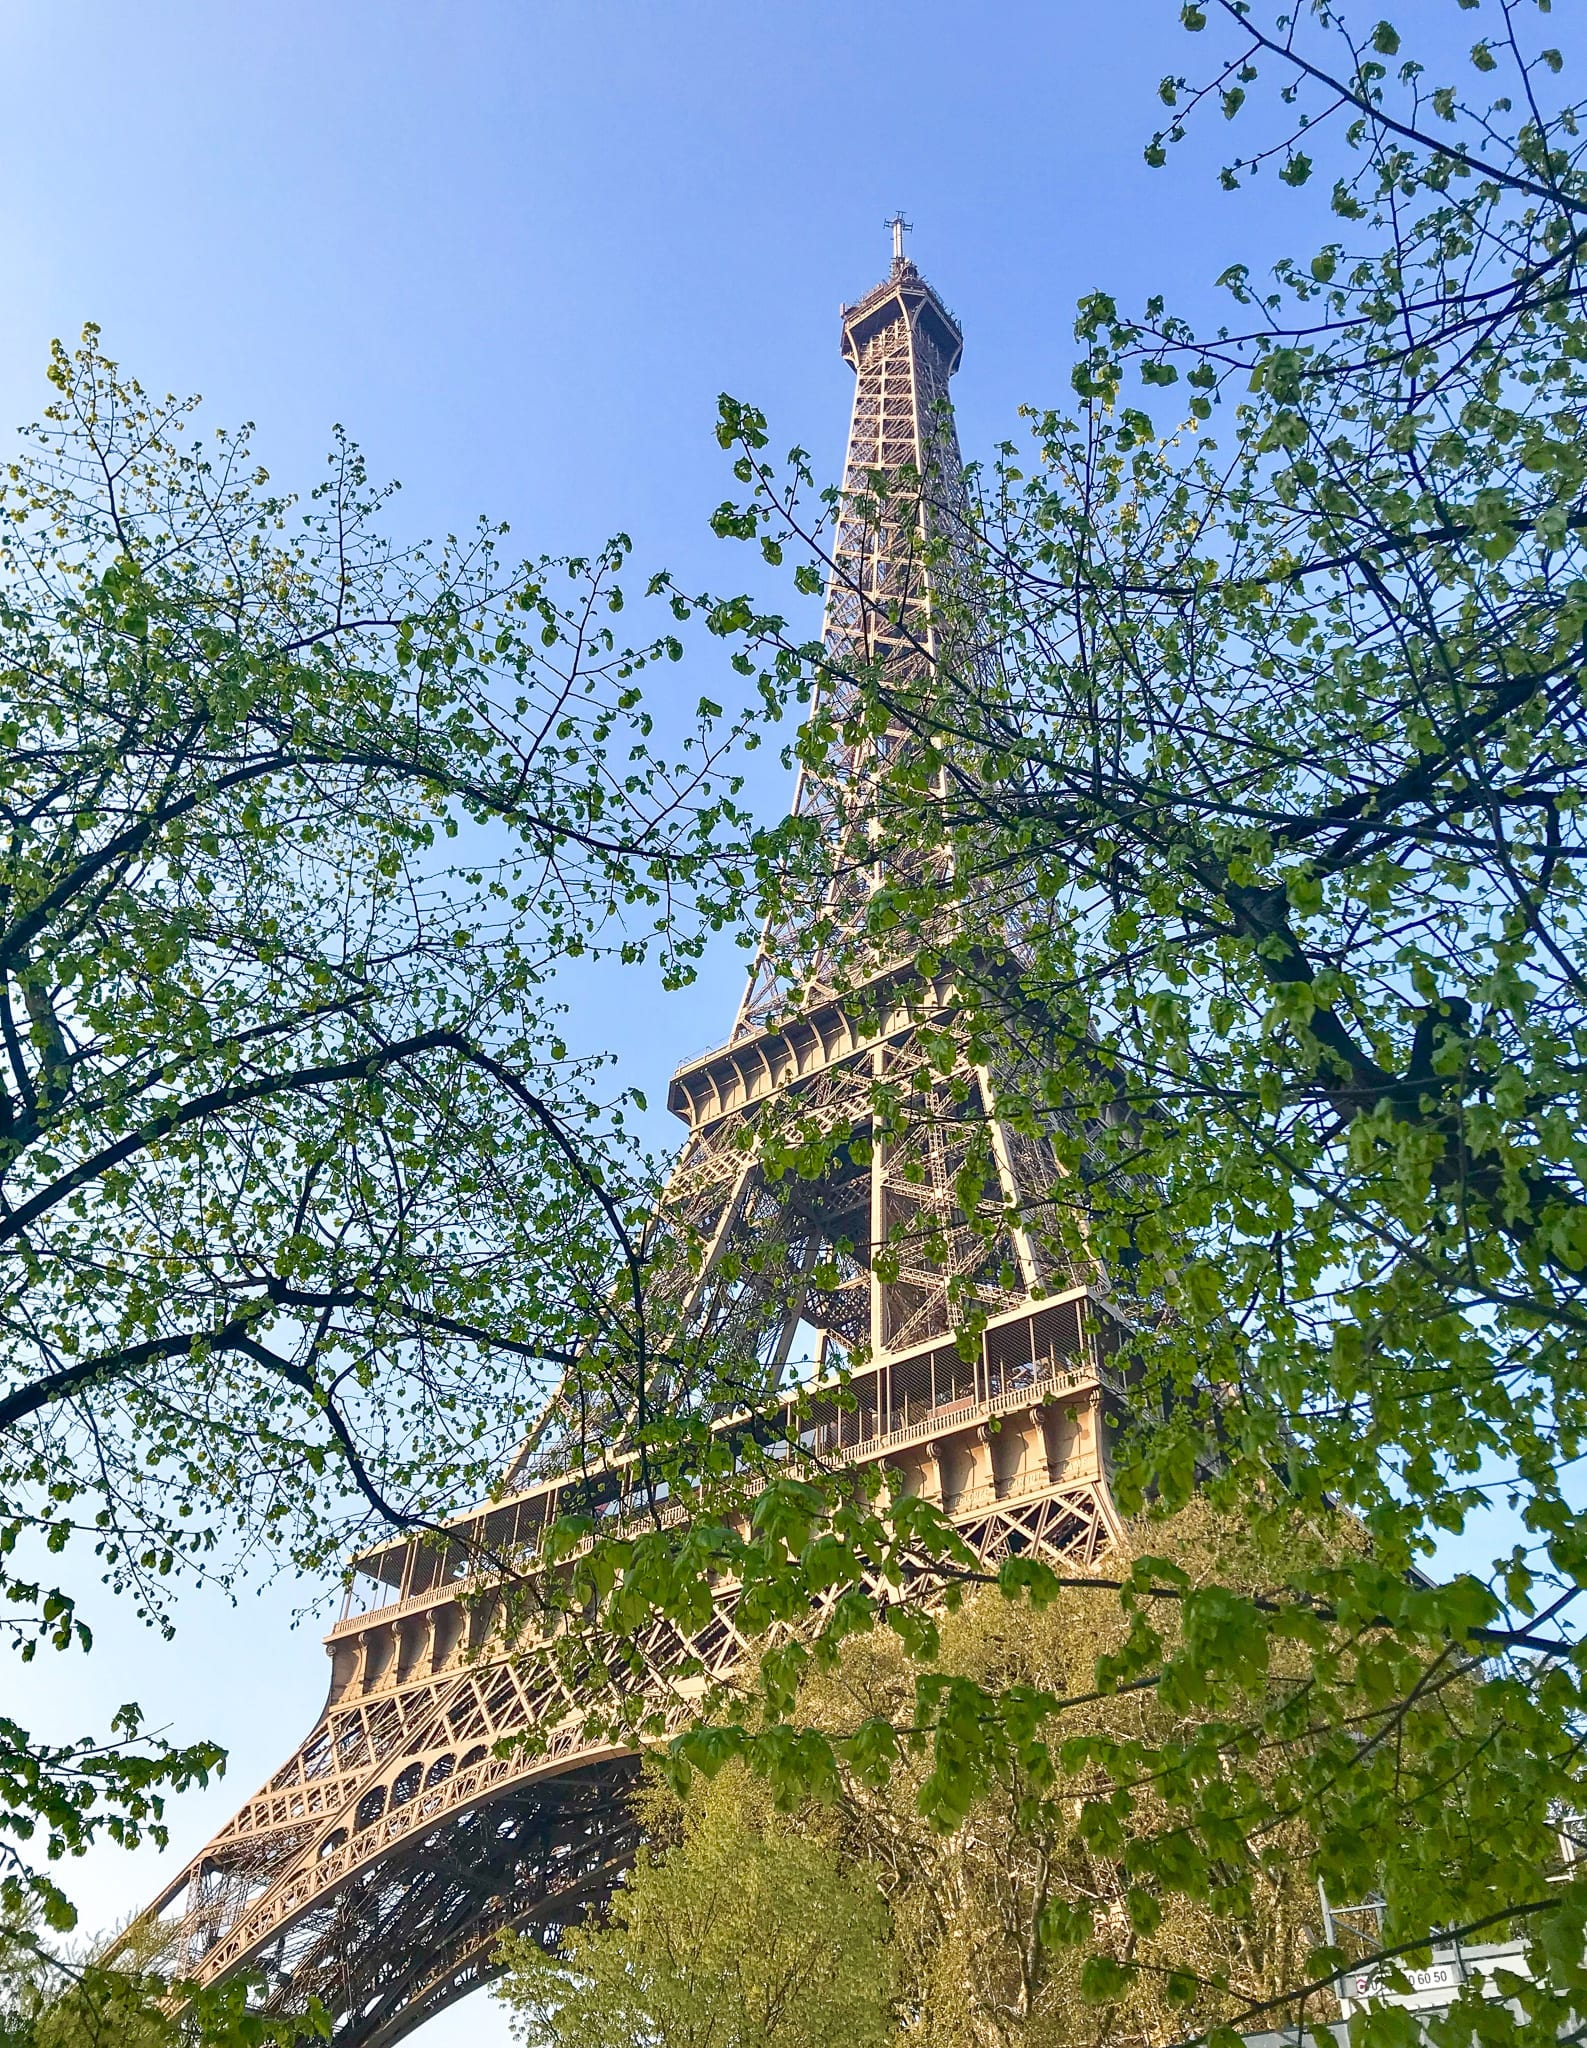 4 days in Paris - The Eiffel Tower in the Spring